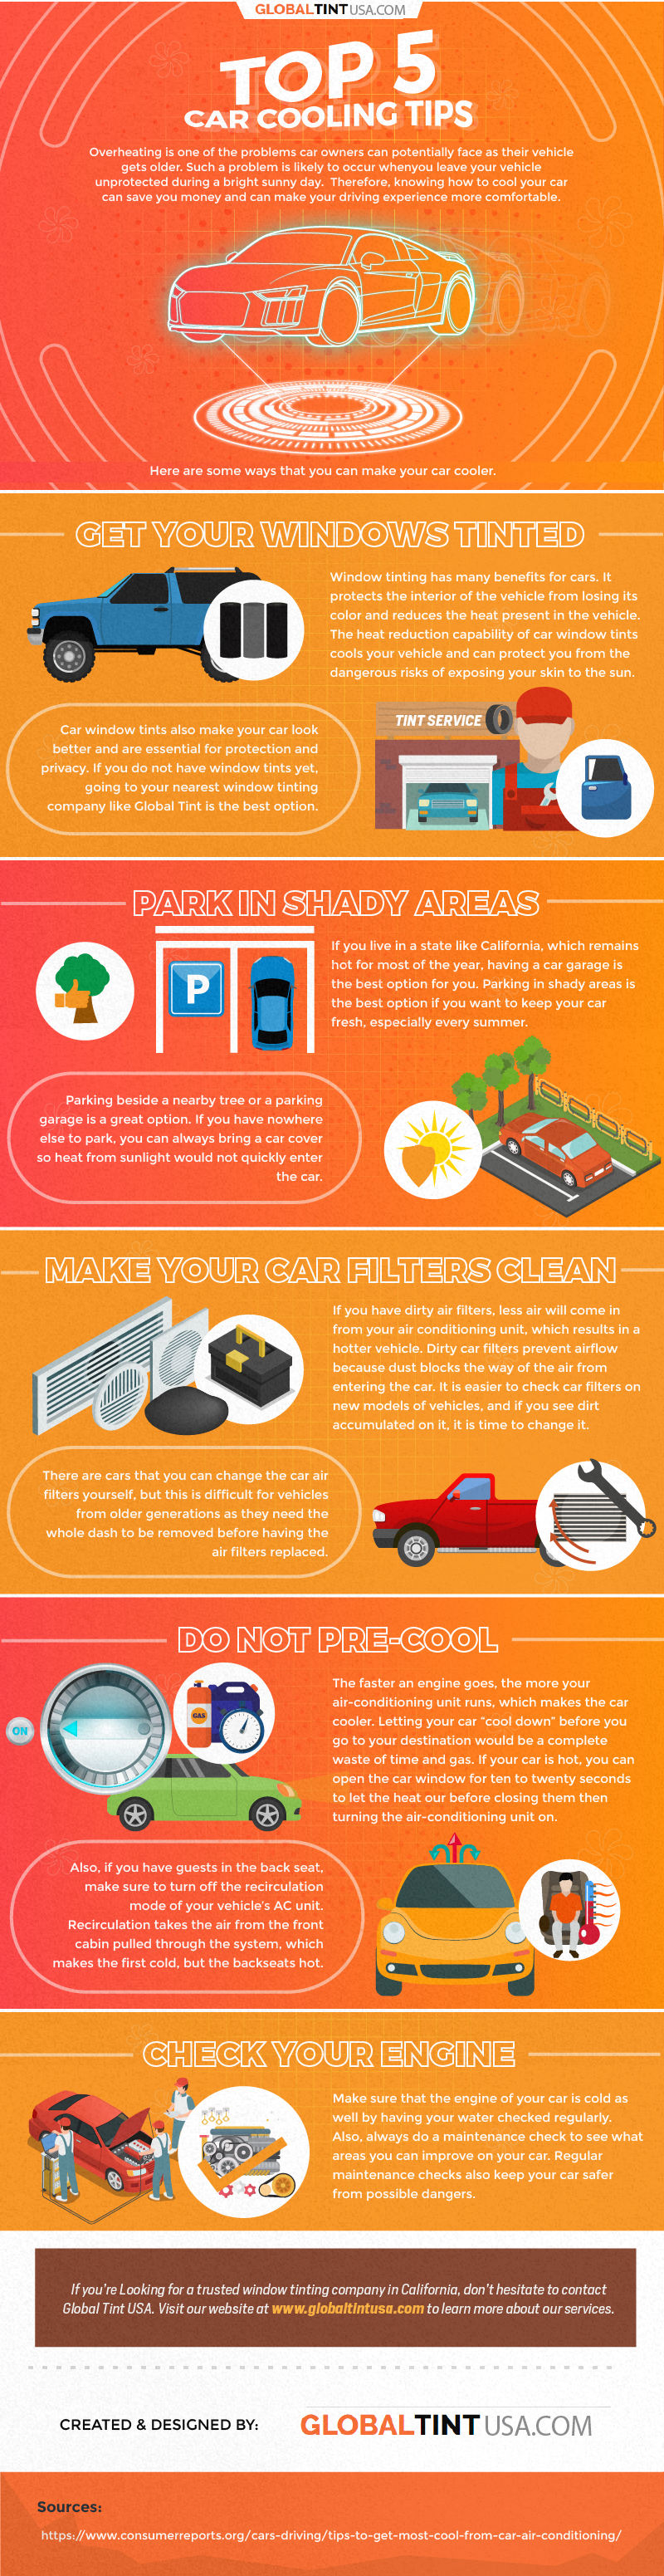 Top 5 Car Cooling Tips - Infographic